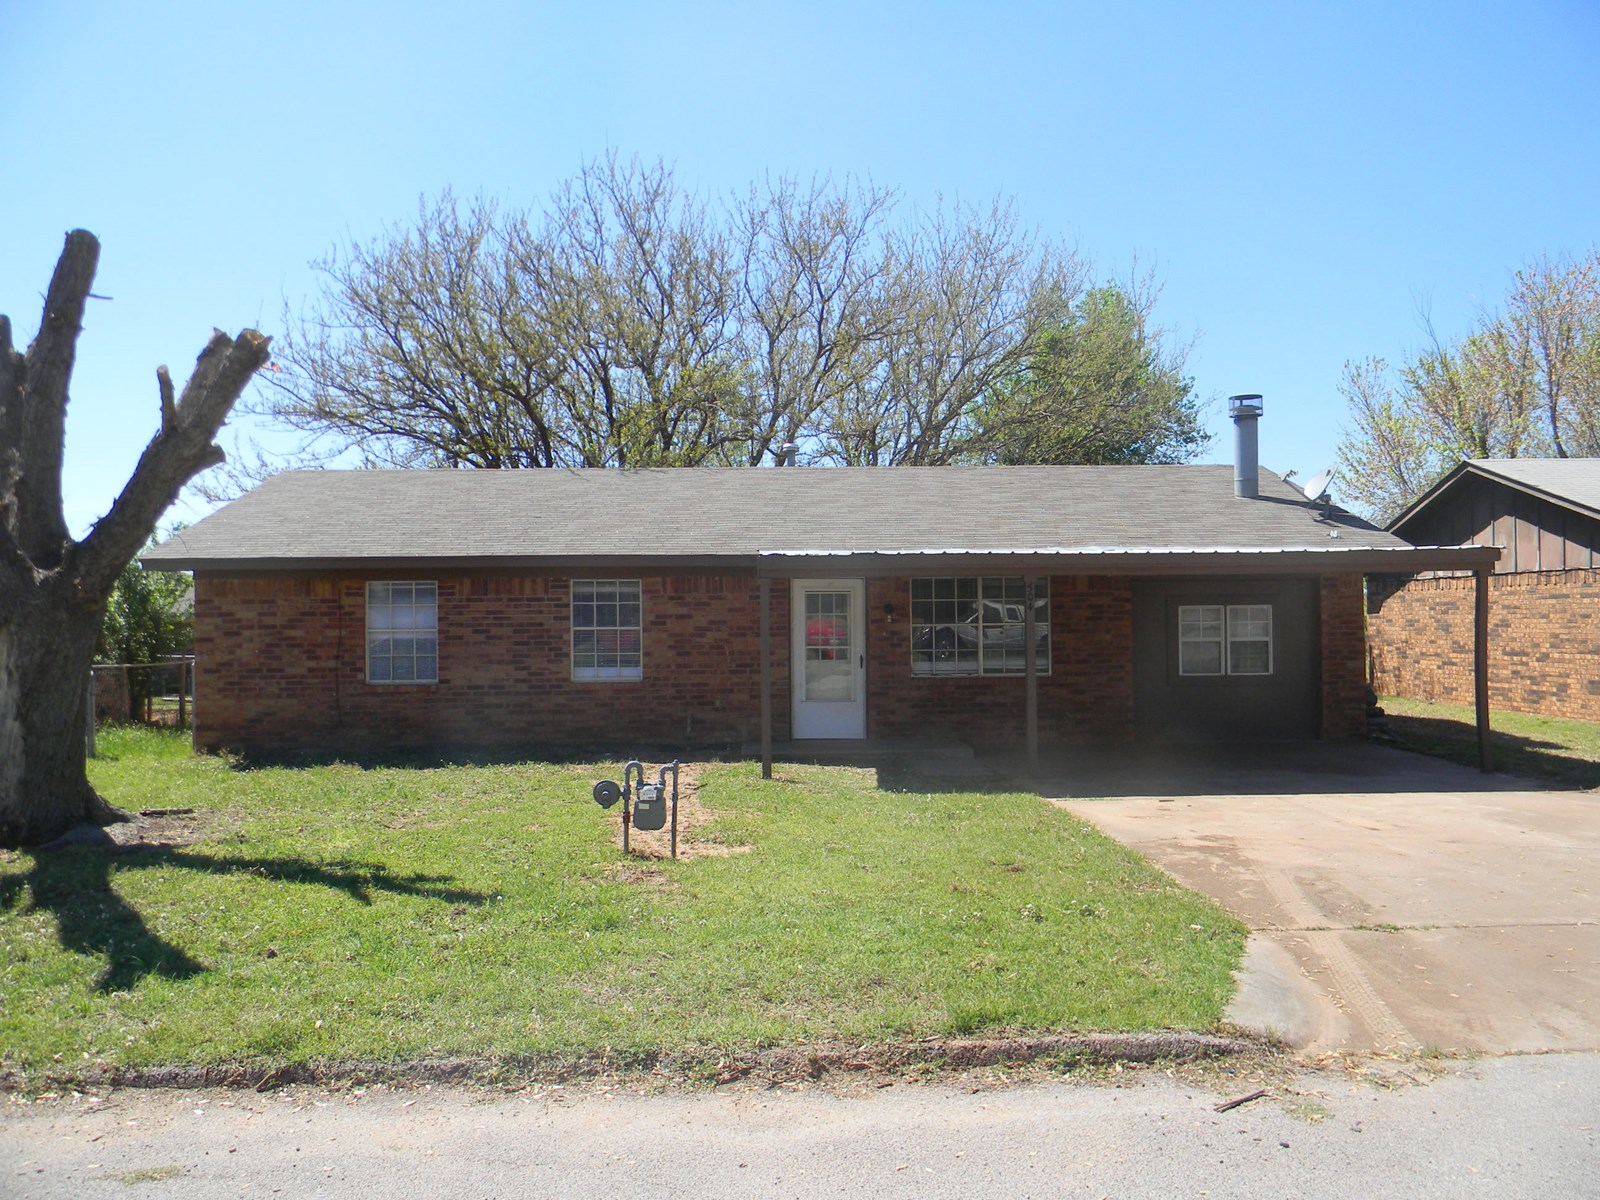 Clinton, Oklahoma home for sale 3 bed 1.5 bath new updates